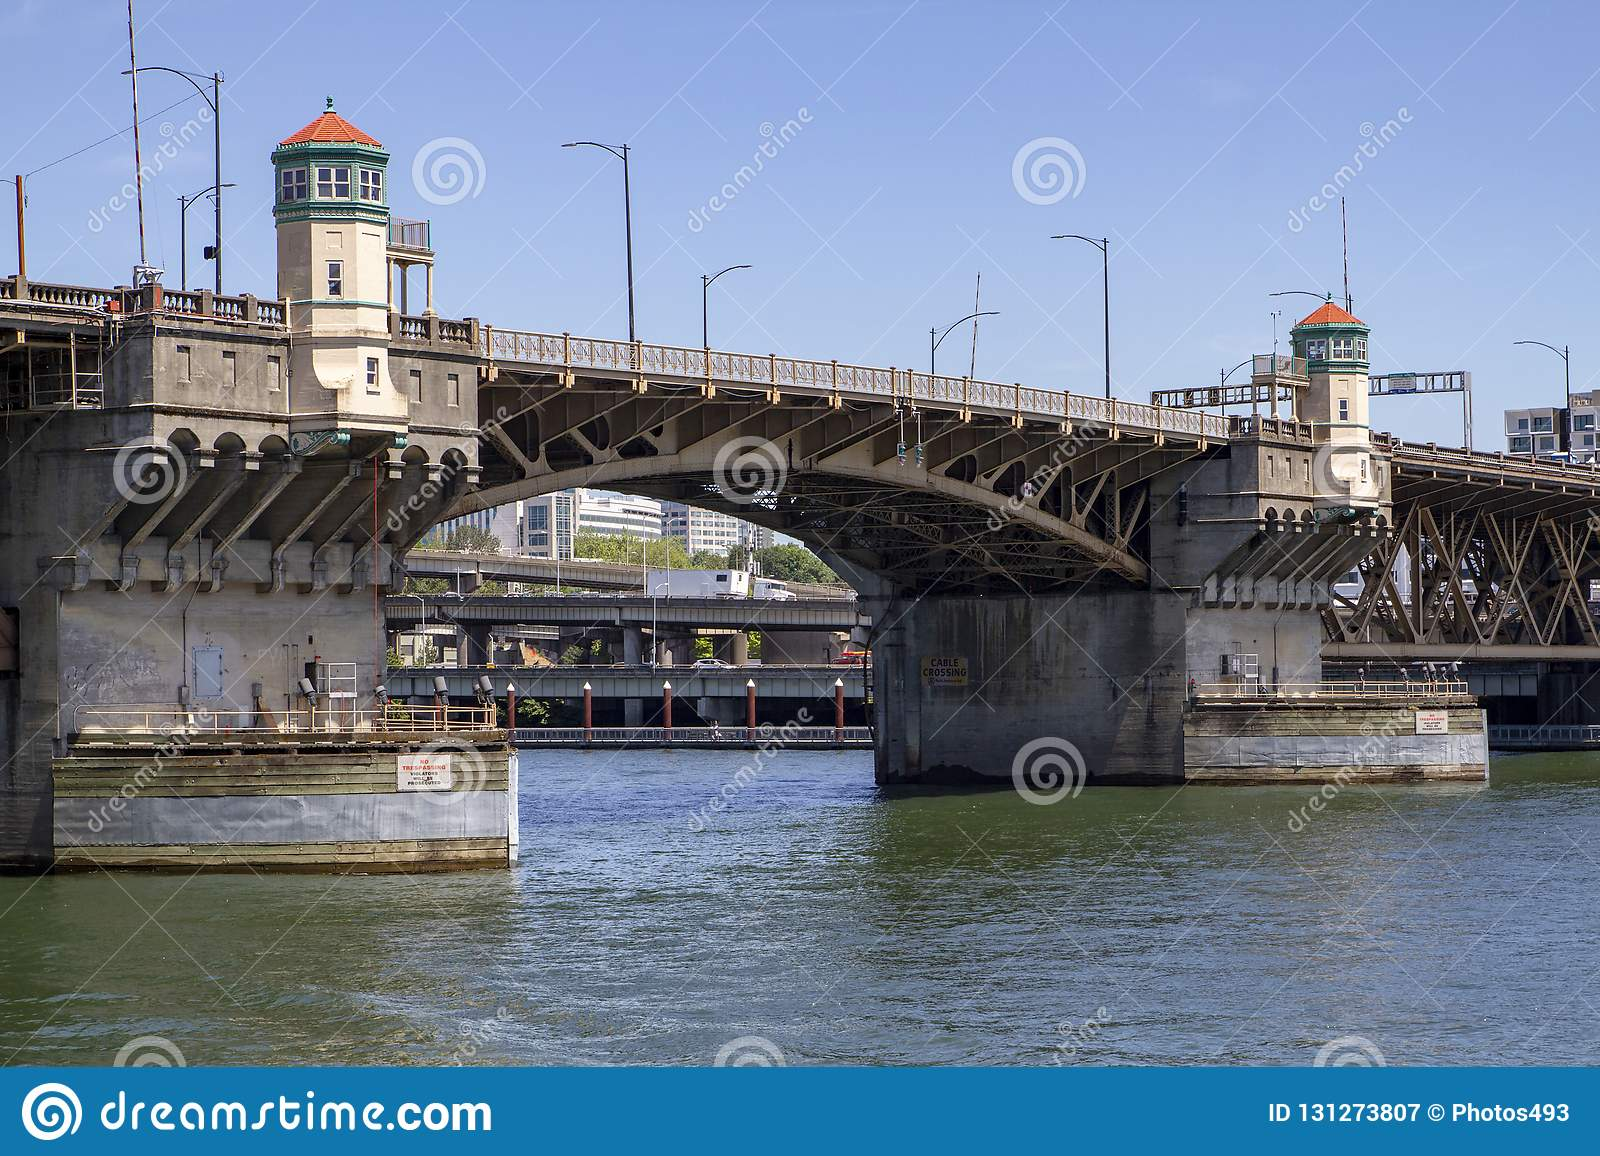 Burnside Bridge over Willamette River in Portland Oregon on a sunny day with blue skies